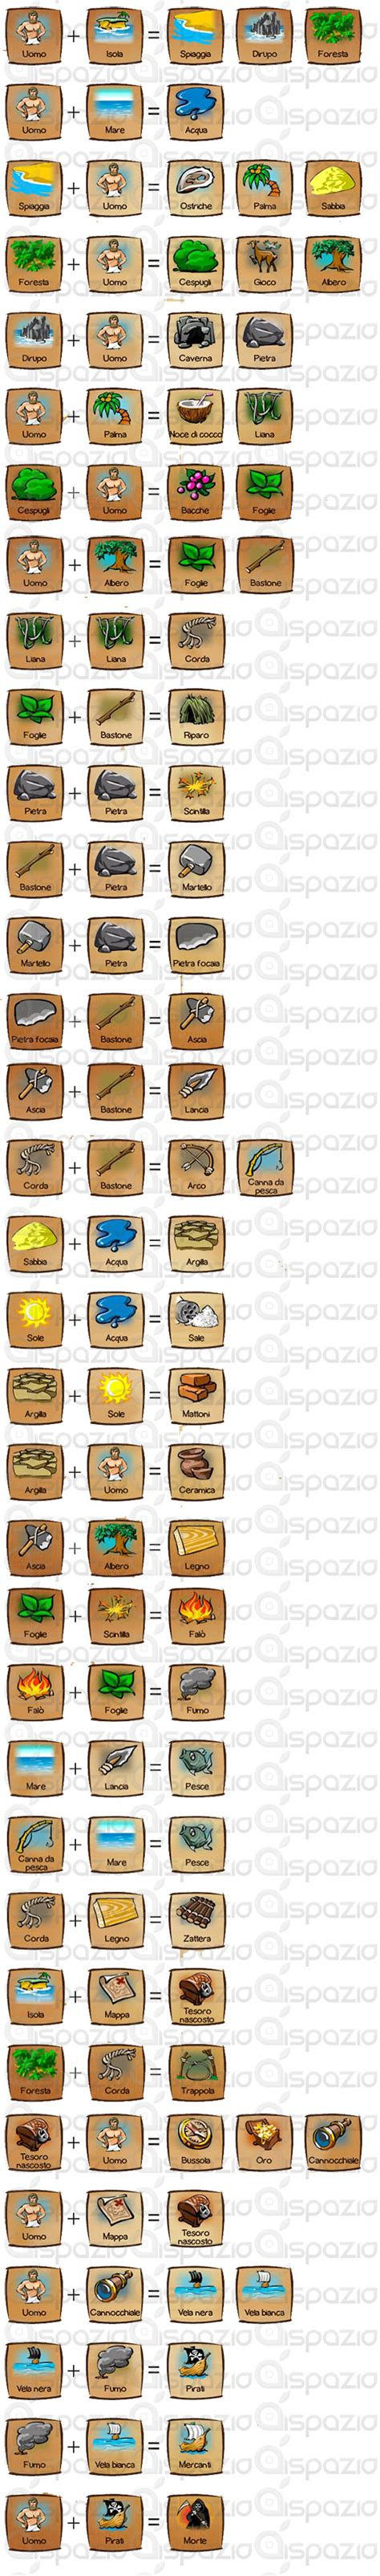 doodle god walkthrough doodle god walkthrough completiamo al 100 sopravvissuto